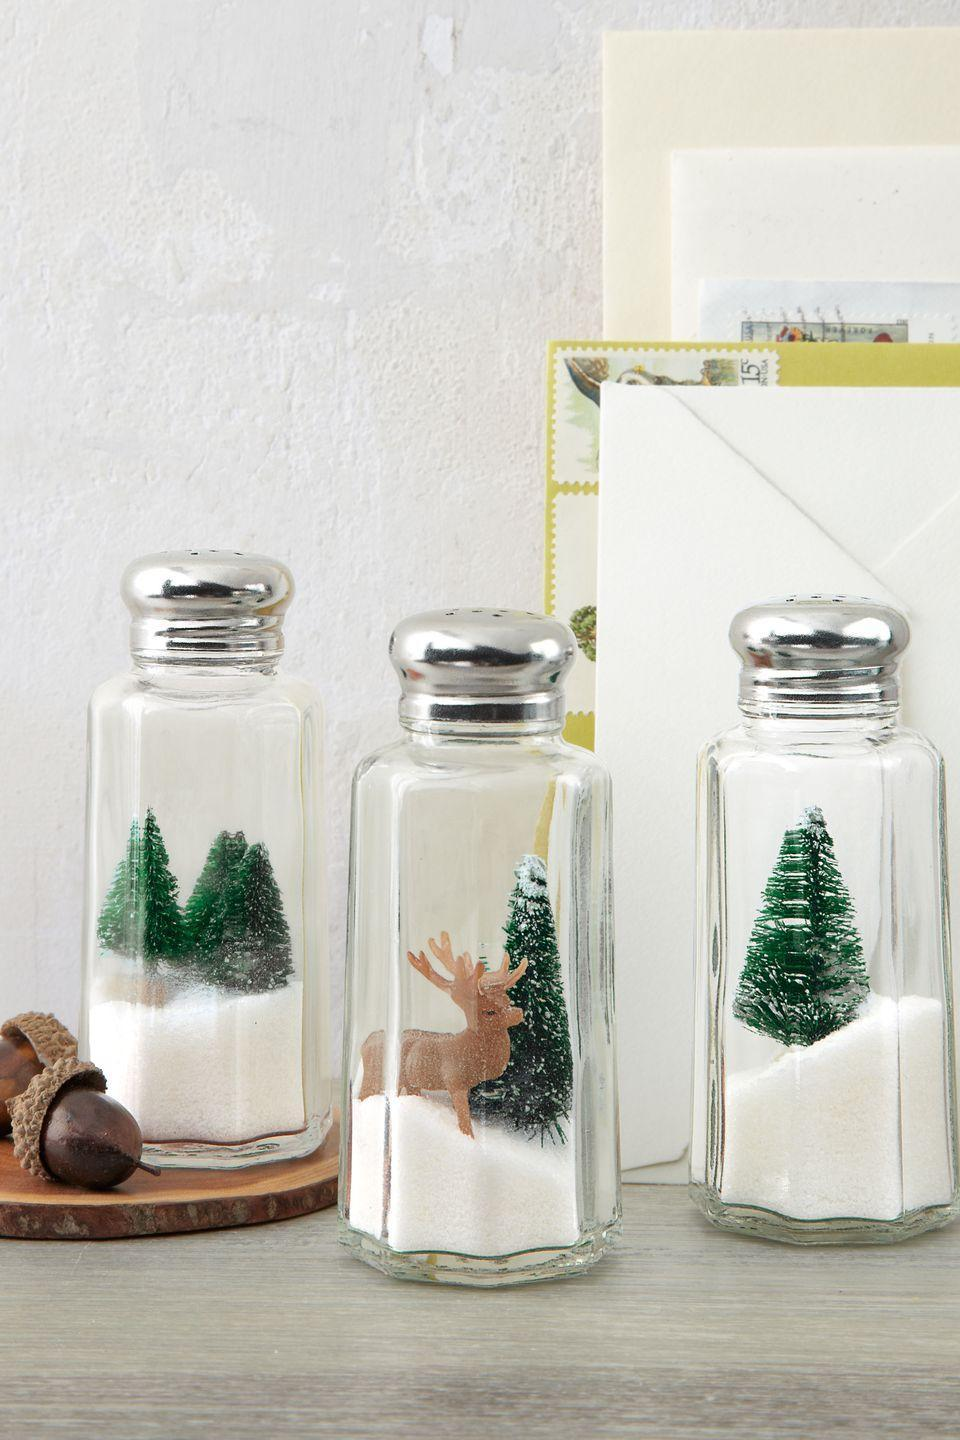 """<p>Here's one Yuletide idea that's definitely worth its salt: Turn under-a-dollar shakers into mini winter wonderlands by nesting toy evergreens and deer atop iodized """"drifts."""" </p><p><strong><a class=""""link rapid-noclick-resp"""" href=""""https://www.amazon.com/Set-12-TrueCraftware-Stainless-Mushroom/dp/B01HTWG3J8?tag=syn-yahoo-20&ascsubtag=%5Bartid%7C10050.g.645%5Bsrc%7Cyahoo-us"""" rel=""""nofollow noopener"""" target=""""_blank"""" data-ylk=""""slk:SHOP SALT SHAKERS"""">SHOP SALT SHAKERS</a></strong></p>"""